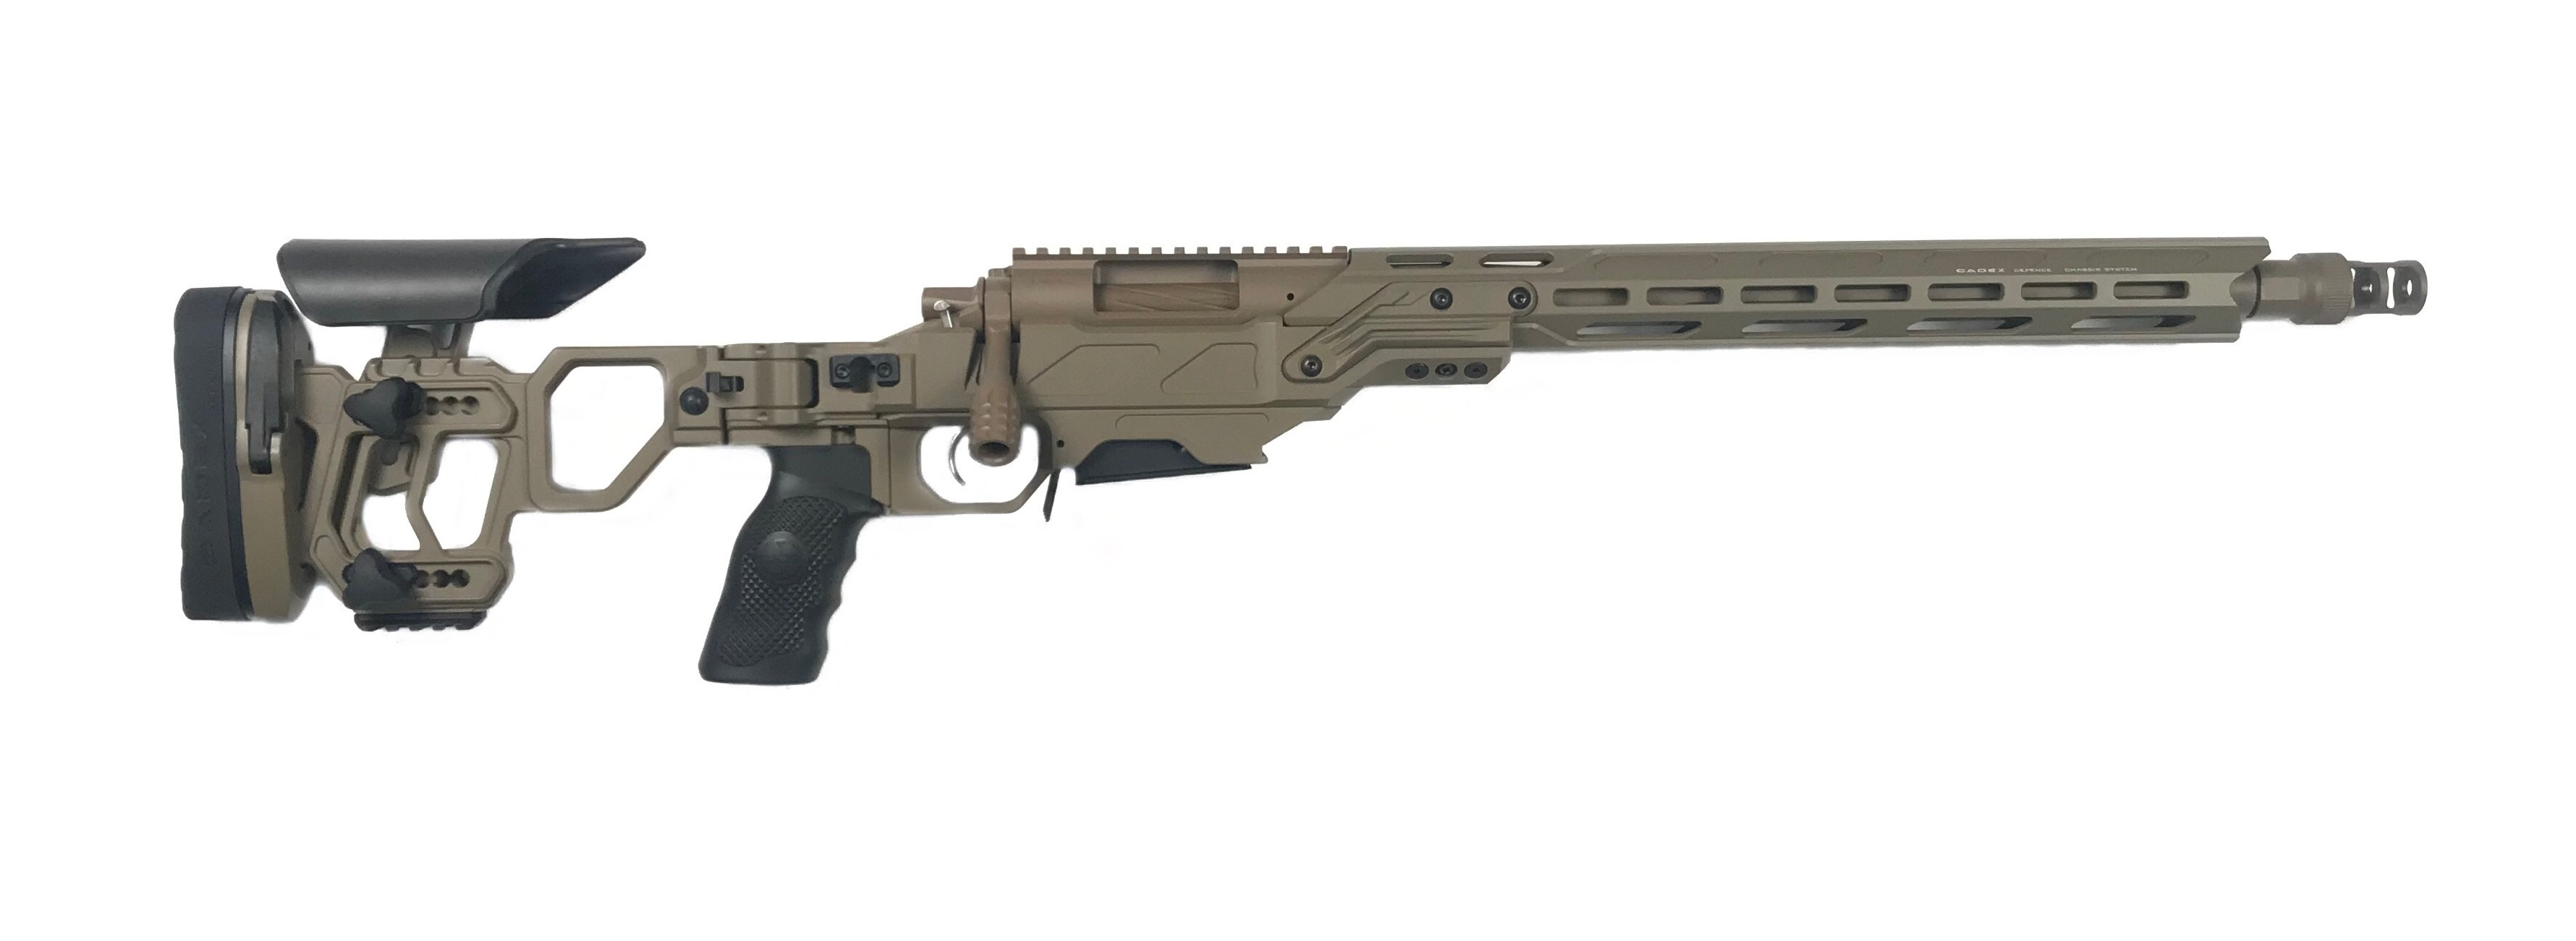 RIFLE OF THE MONTH!